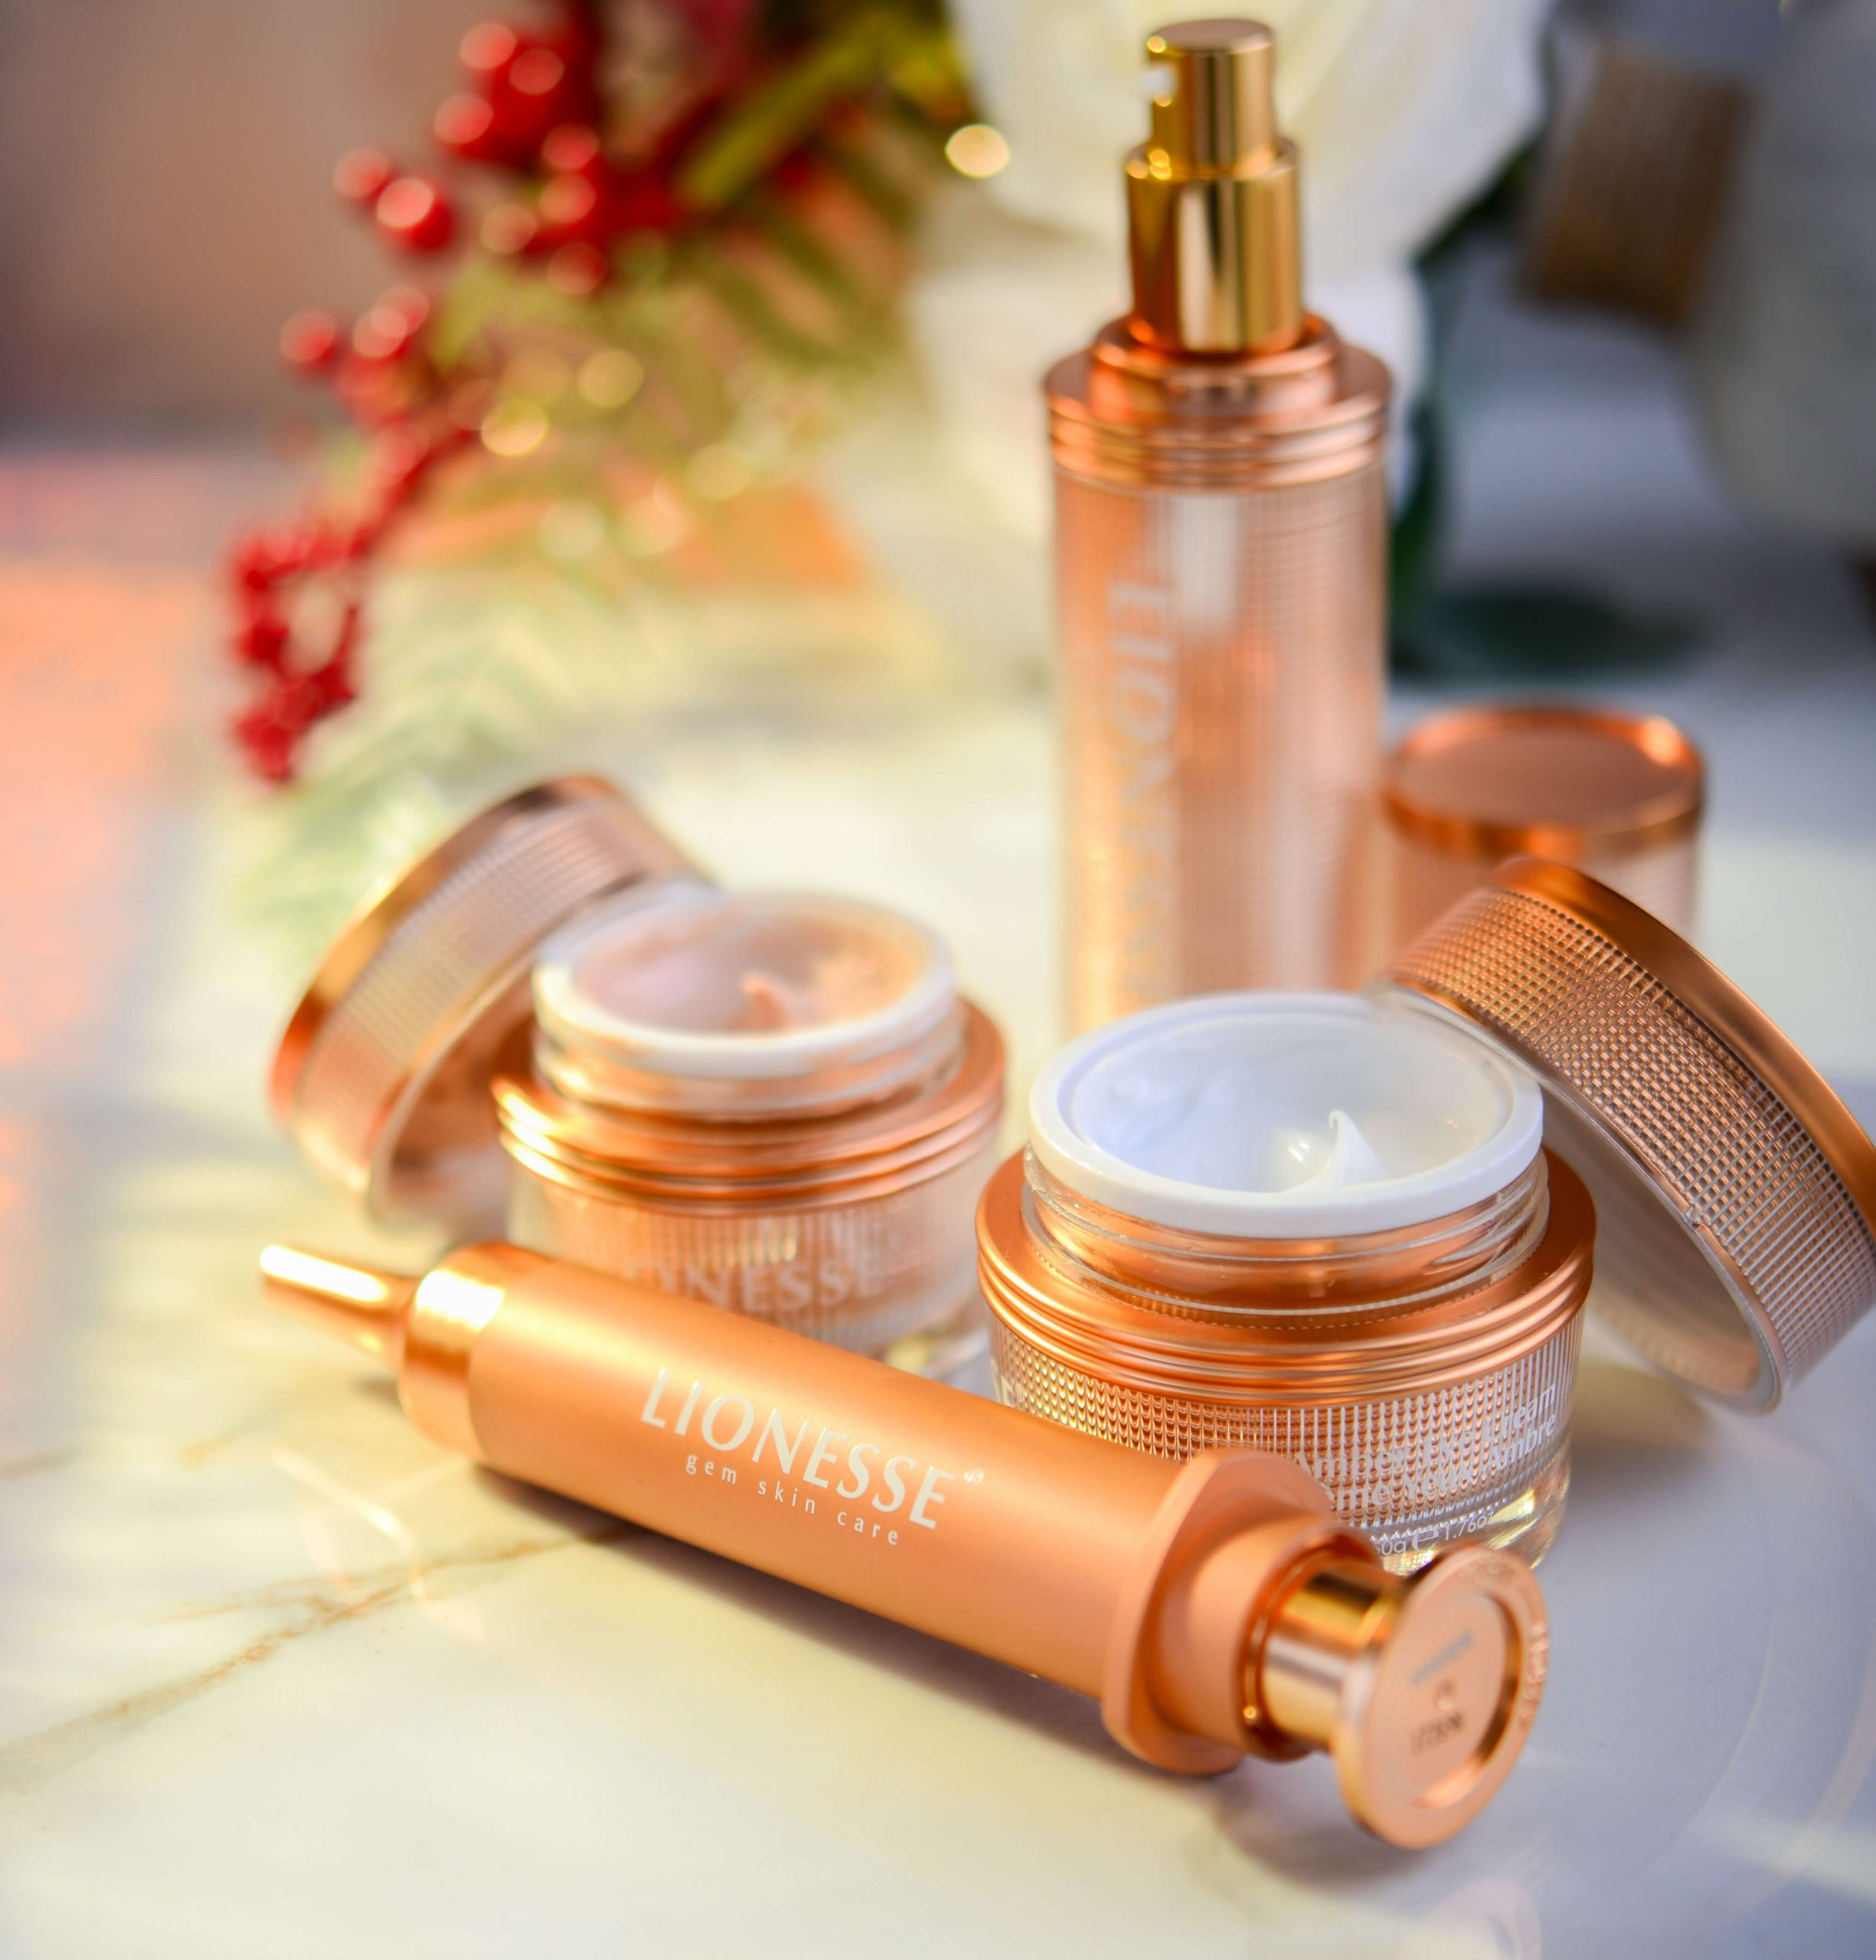 Lionesse products